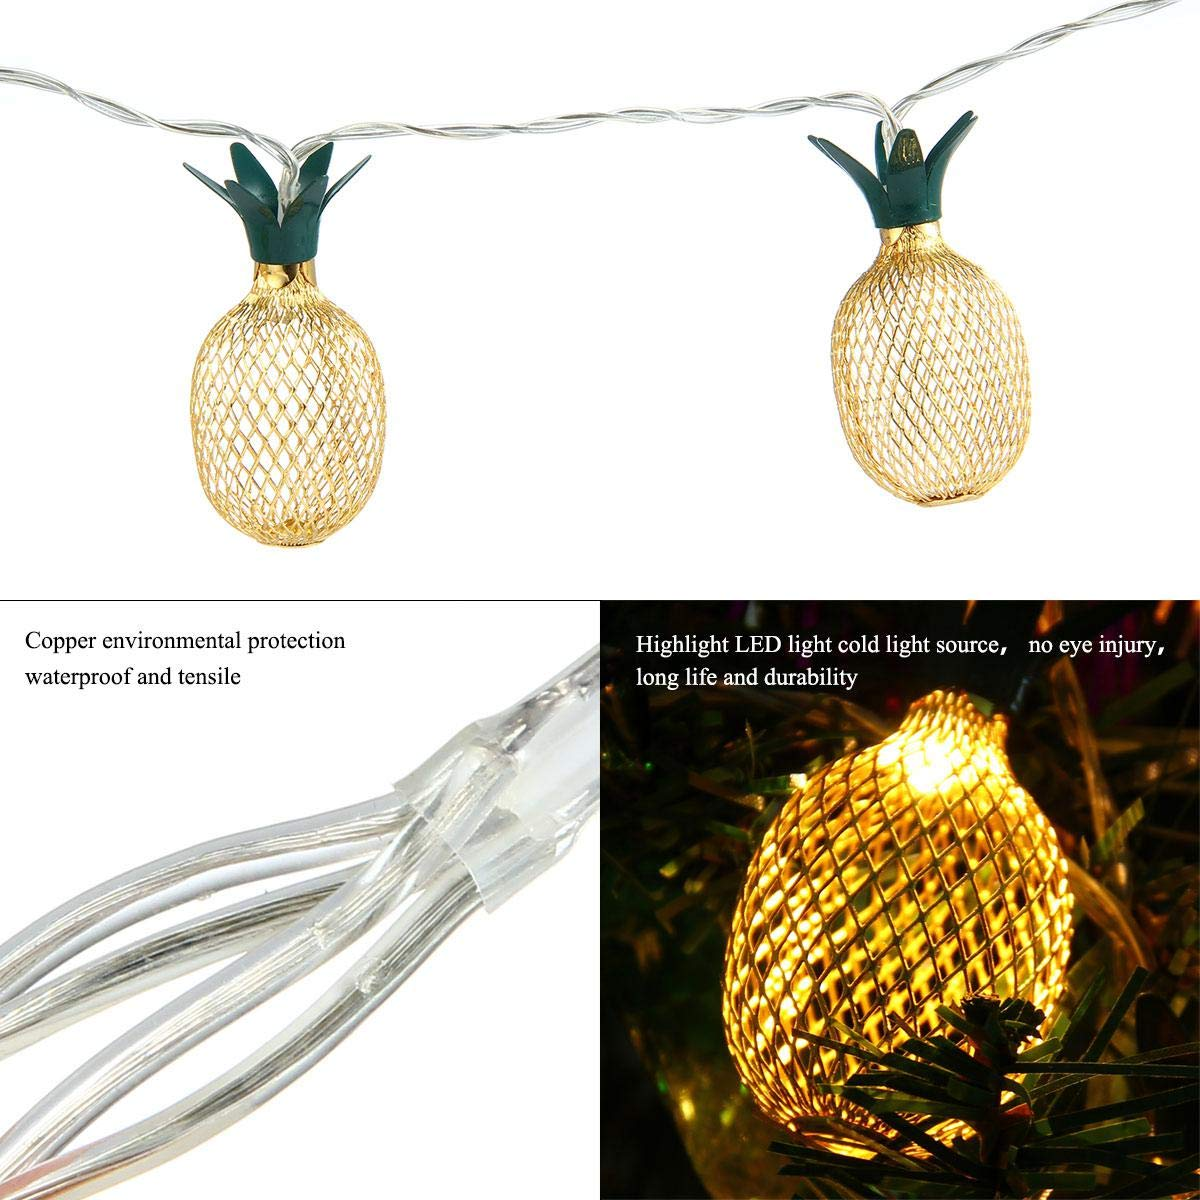 Pineapple String Lights, 200in/5m 40 LED Bulbs WaterproofSolar ChargingLantern String Lights with 2 Light Mode Fairy Lights for Wedding Garden Festival Party Halloween Christmas Indoor & Outdoor by Umiwe (Image #3)